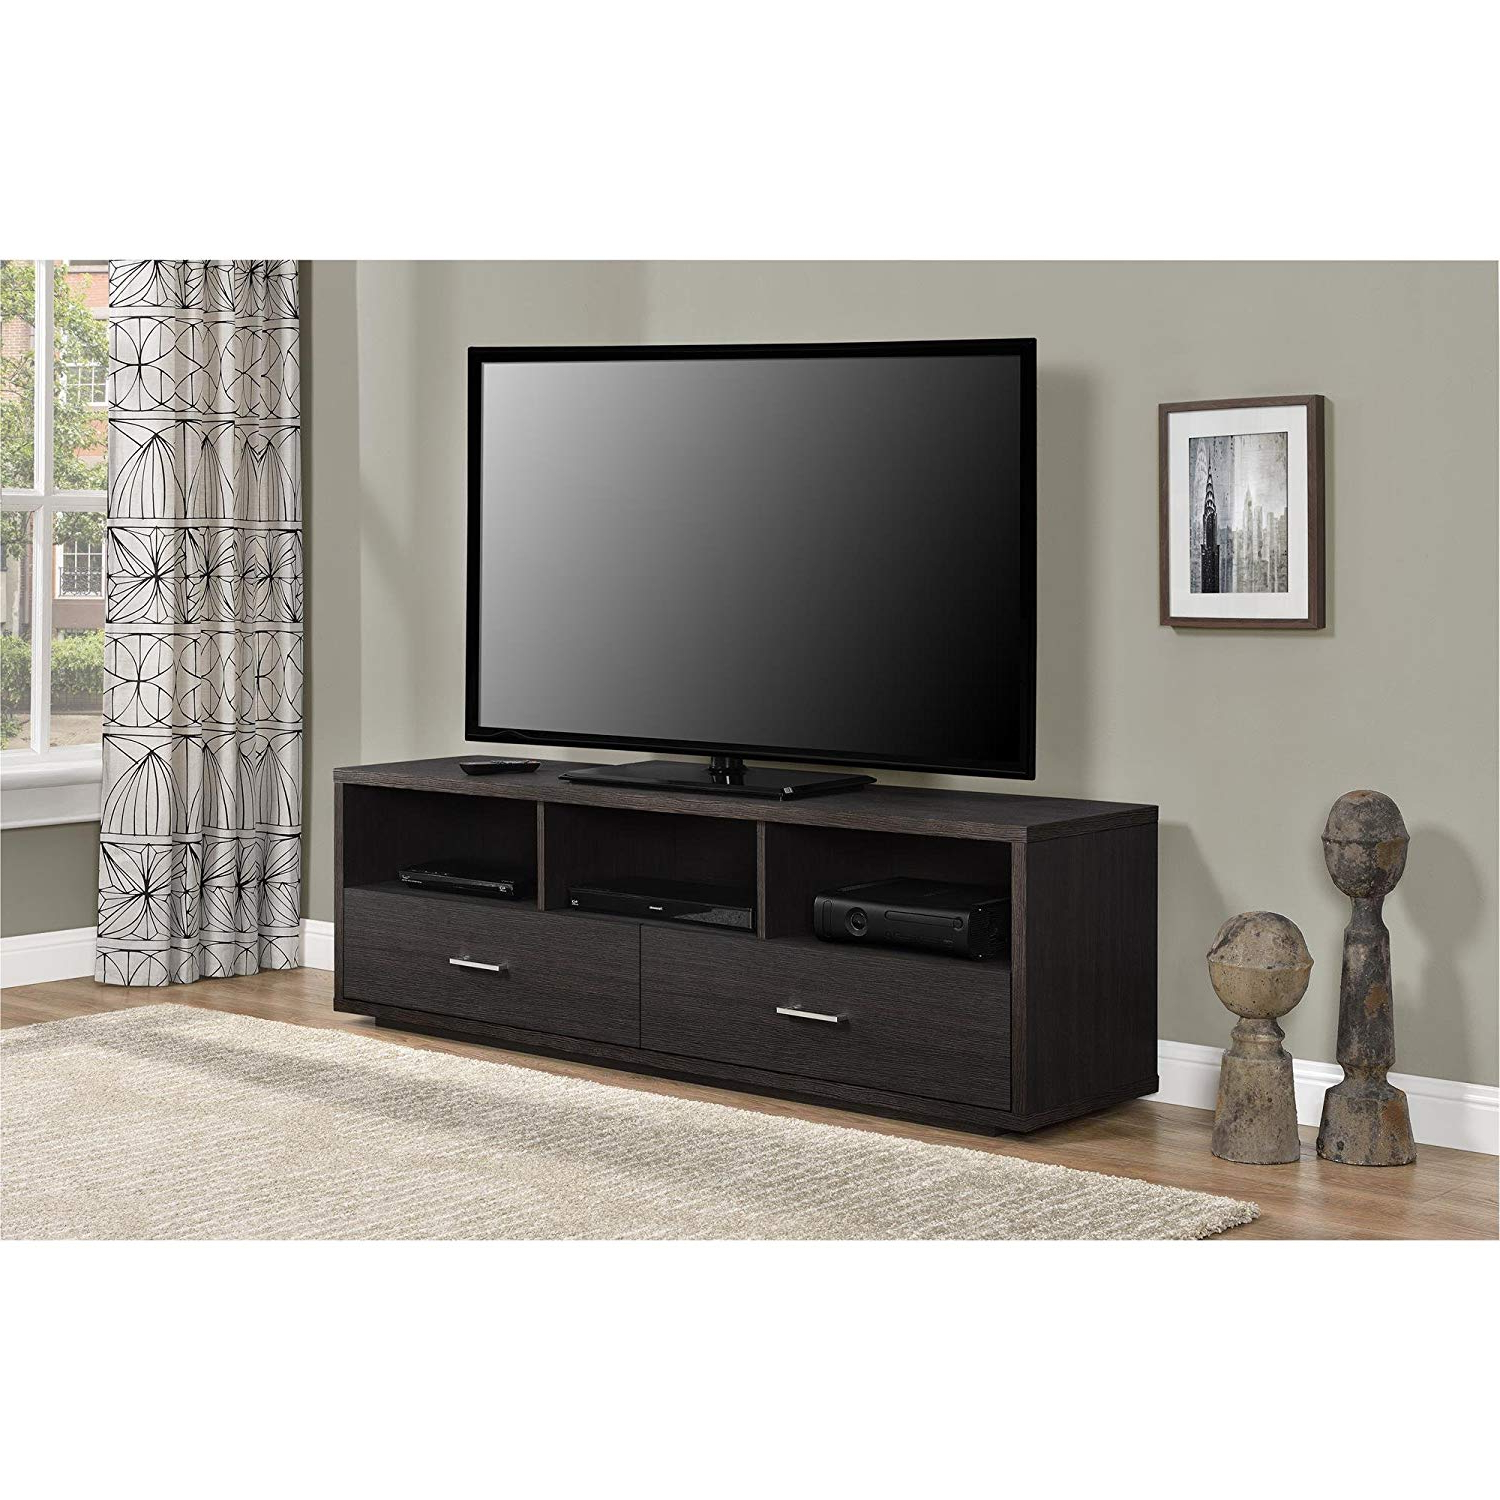 Most Up To Date Amazon: Ameriwood Home Clark Tv Stand For Tvs Up To 70 With Regard To Abbot 60 Inch Tv Stands (View 14 of 20)